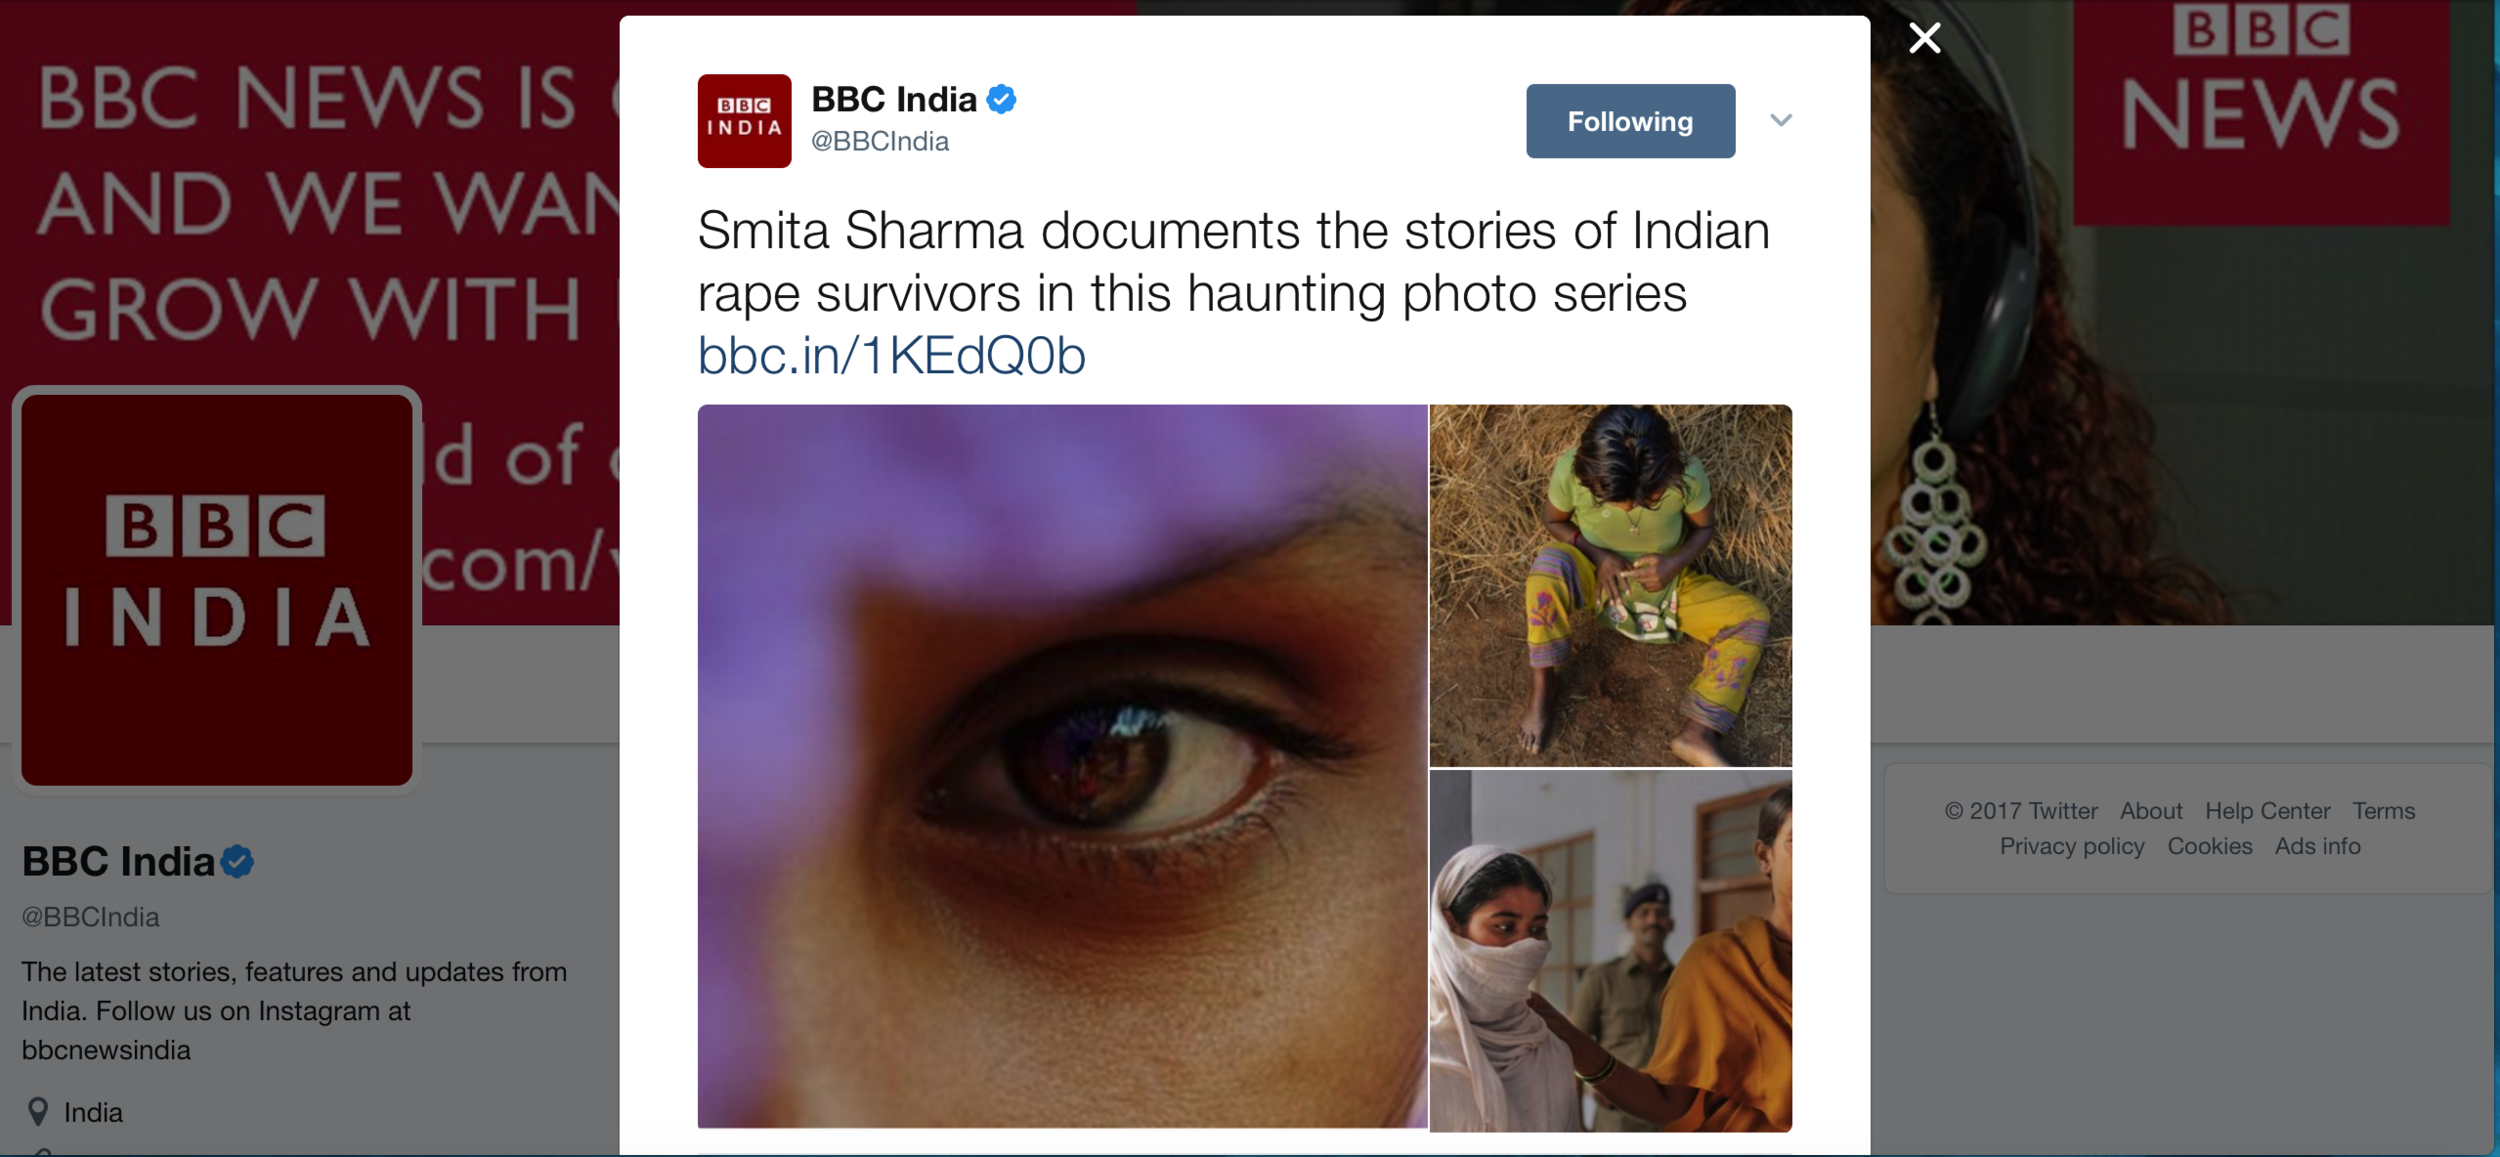 https://www.bbc.com/news/world-asia-india-35379221